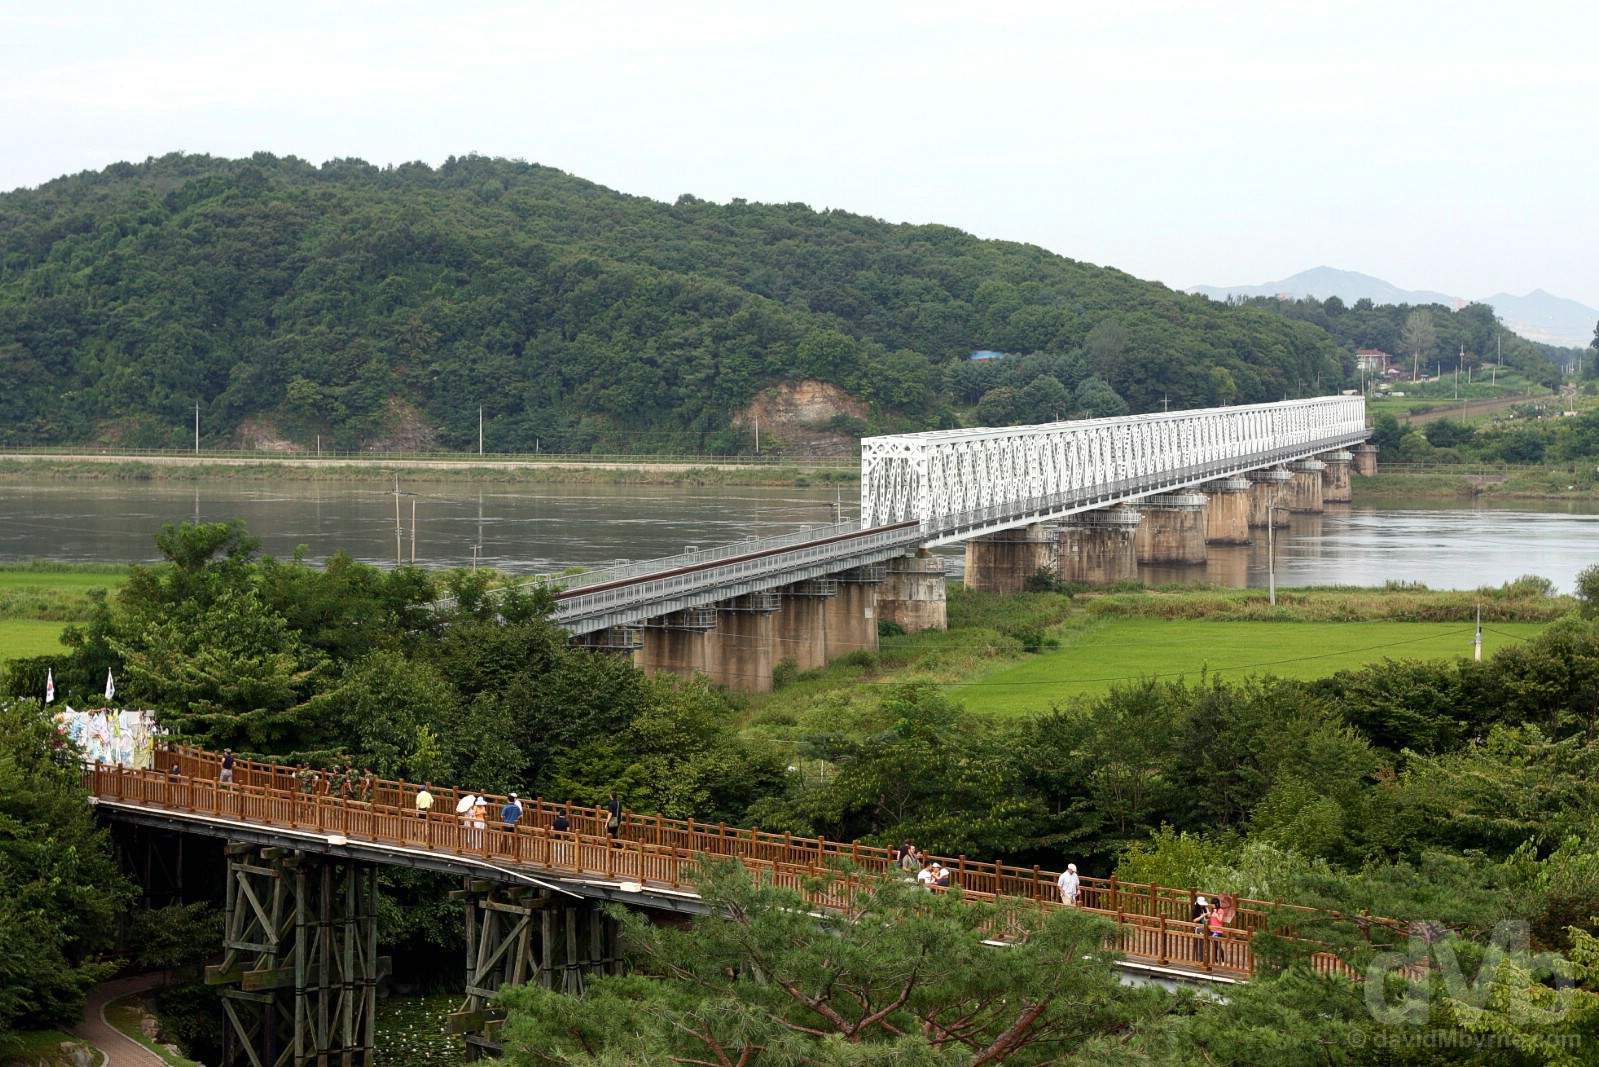 The Bridge of Freedom of the Demilitarized Zone (DMZ) at Imjingak, South Korea. August 21, 2009.